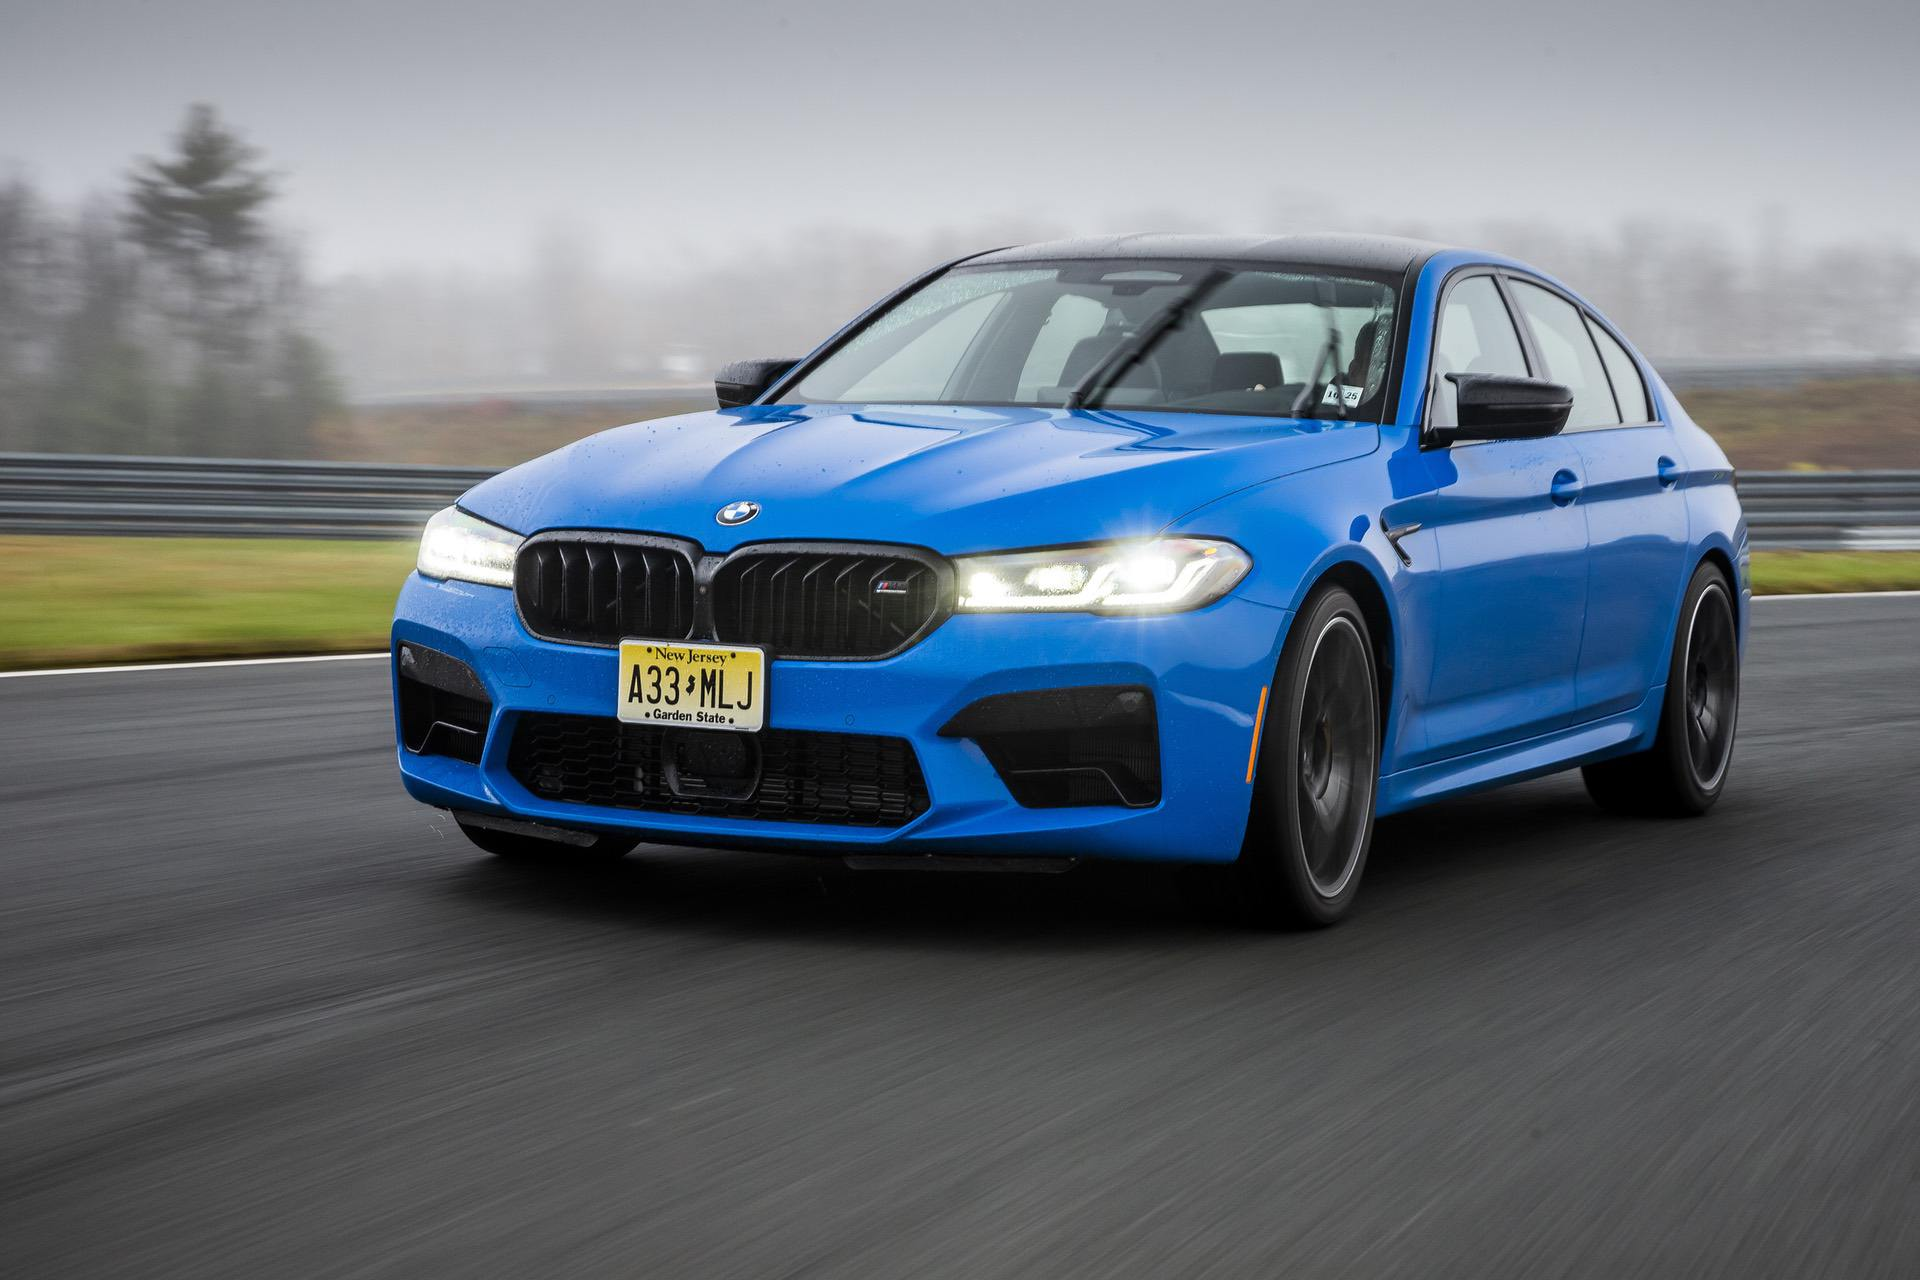 Video: 1,000 HP BMW M5 does 100-200 km/h in 4.28 seconds